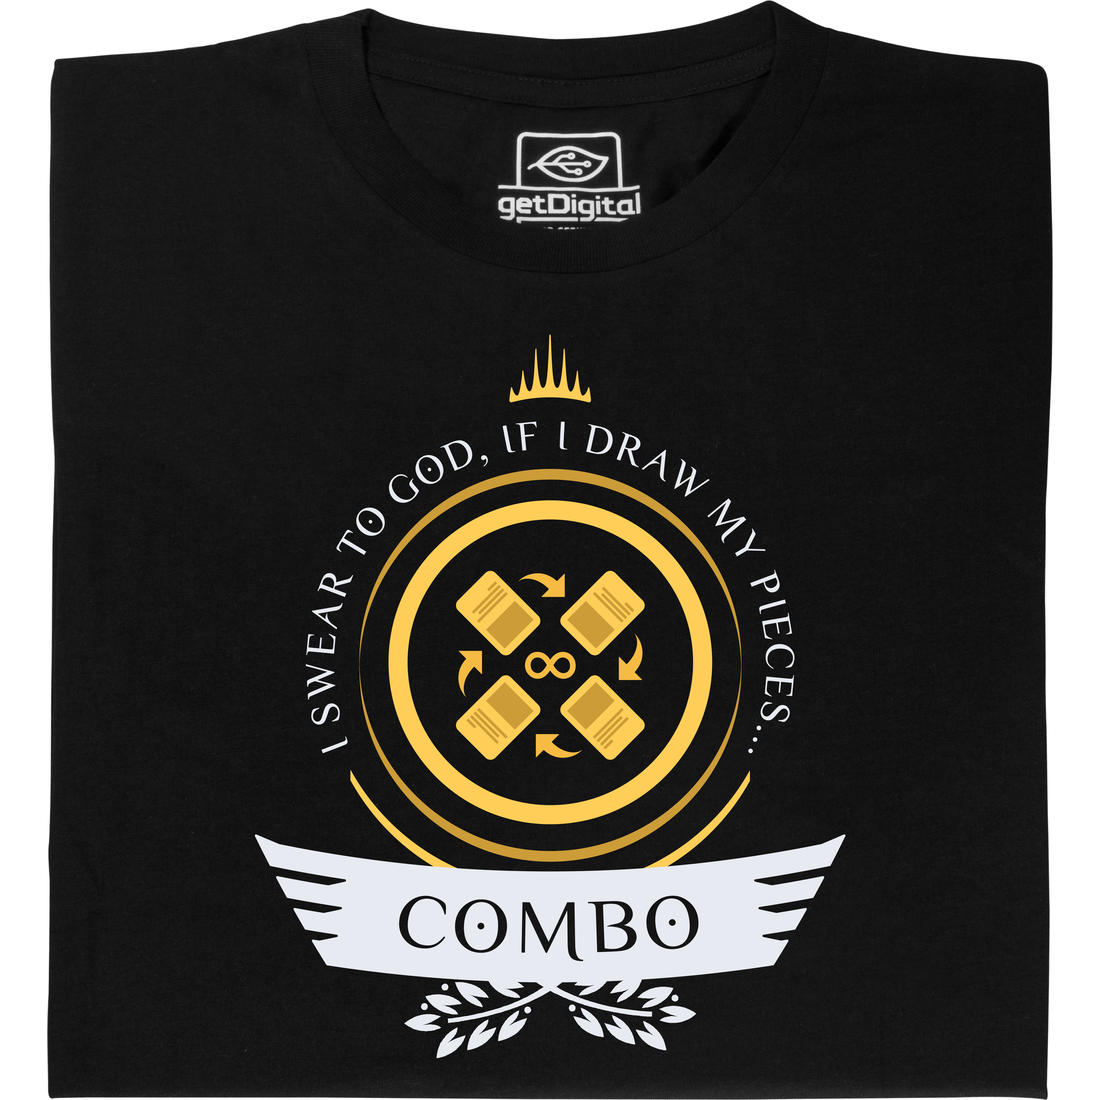 Fair gehandeltes Öko-T-Shirt: Combo Life für Magic-Spieler